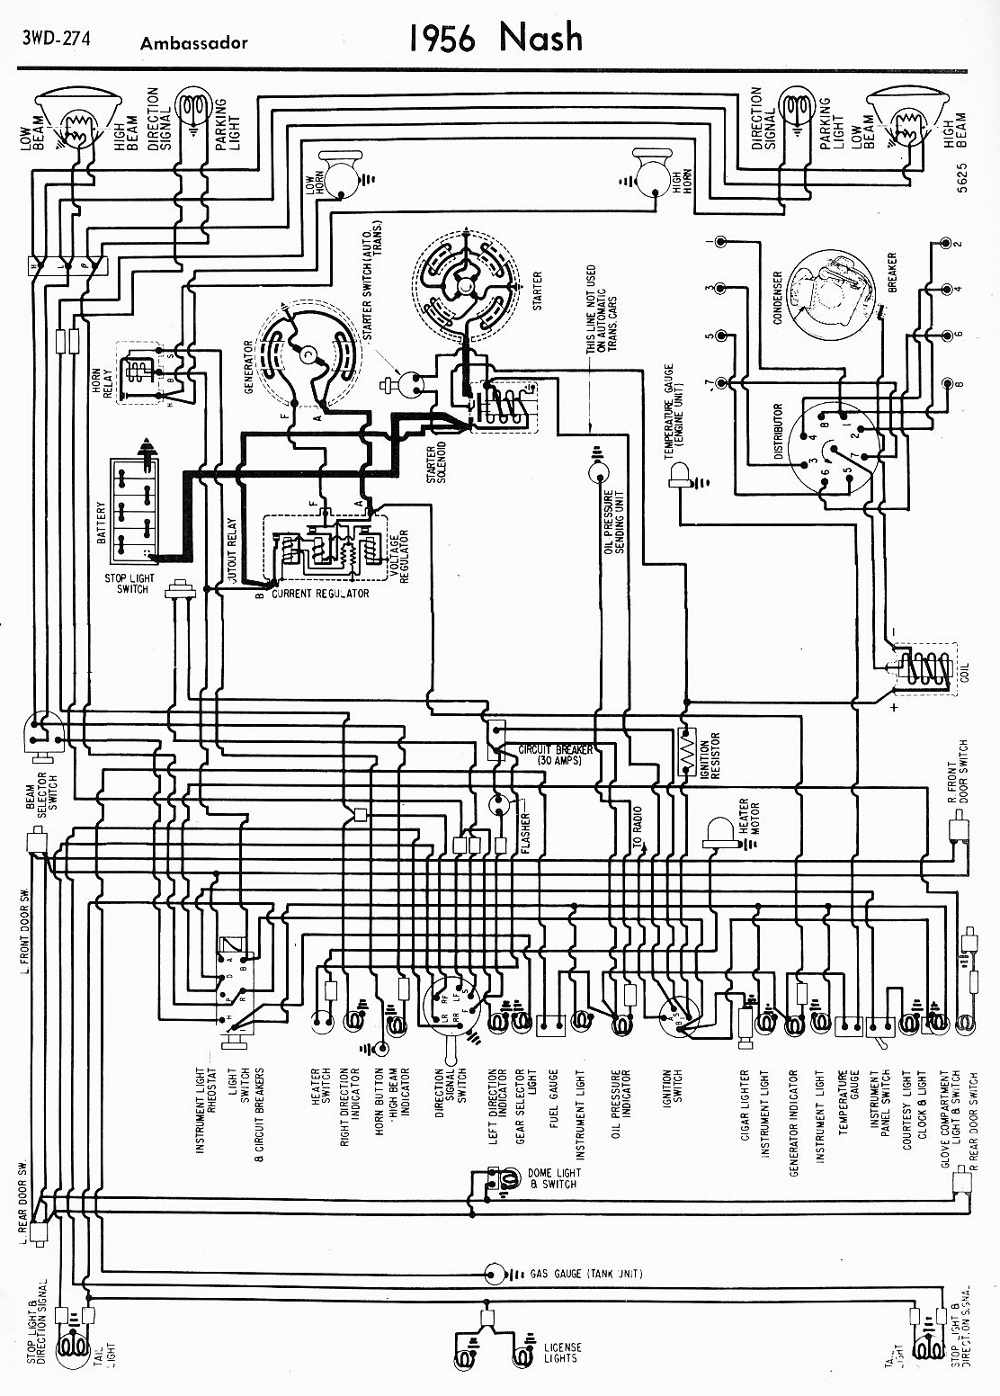 colorful eurovox wiring diagram elaboration everything you need to basic wiring diagram fancy eurovox wiring diagram image collection wiring schematics